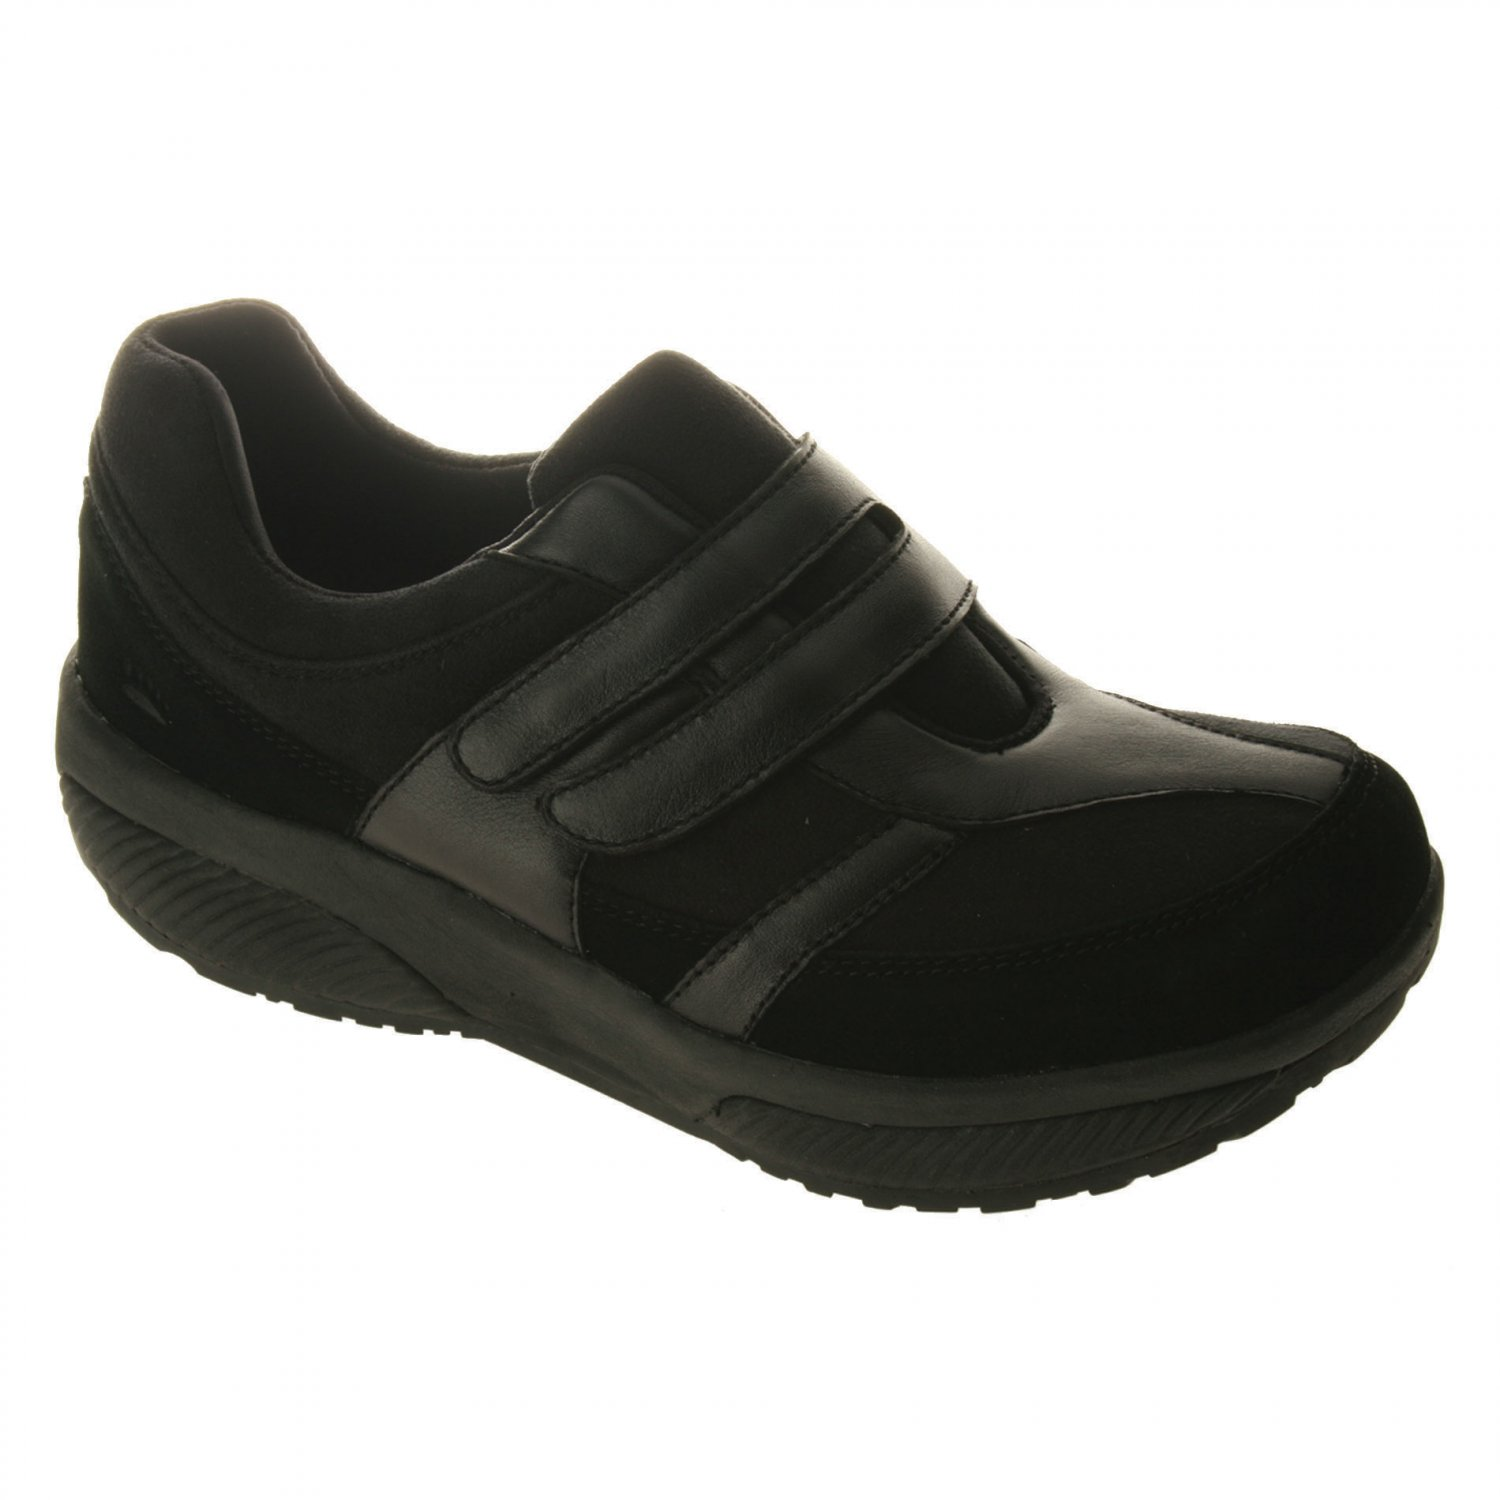 Spring Step PULSE Sneakers Shoes All Sizes & Colors $8